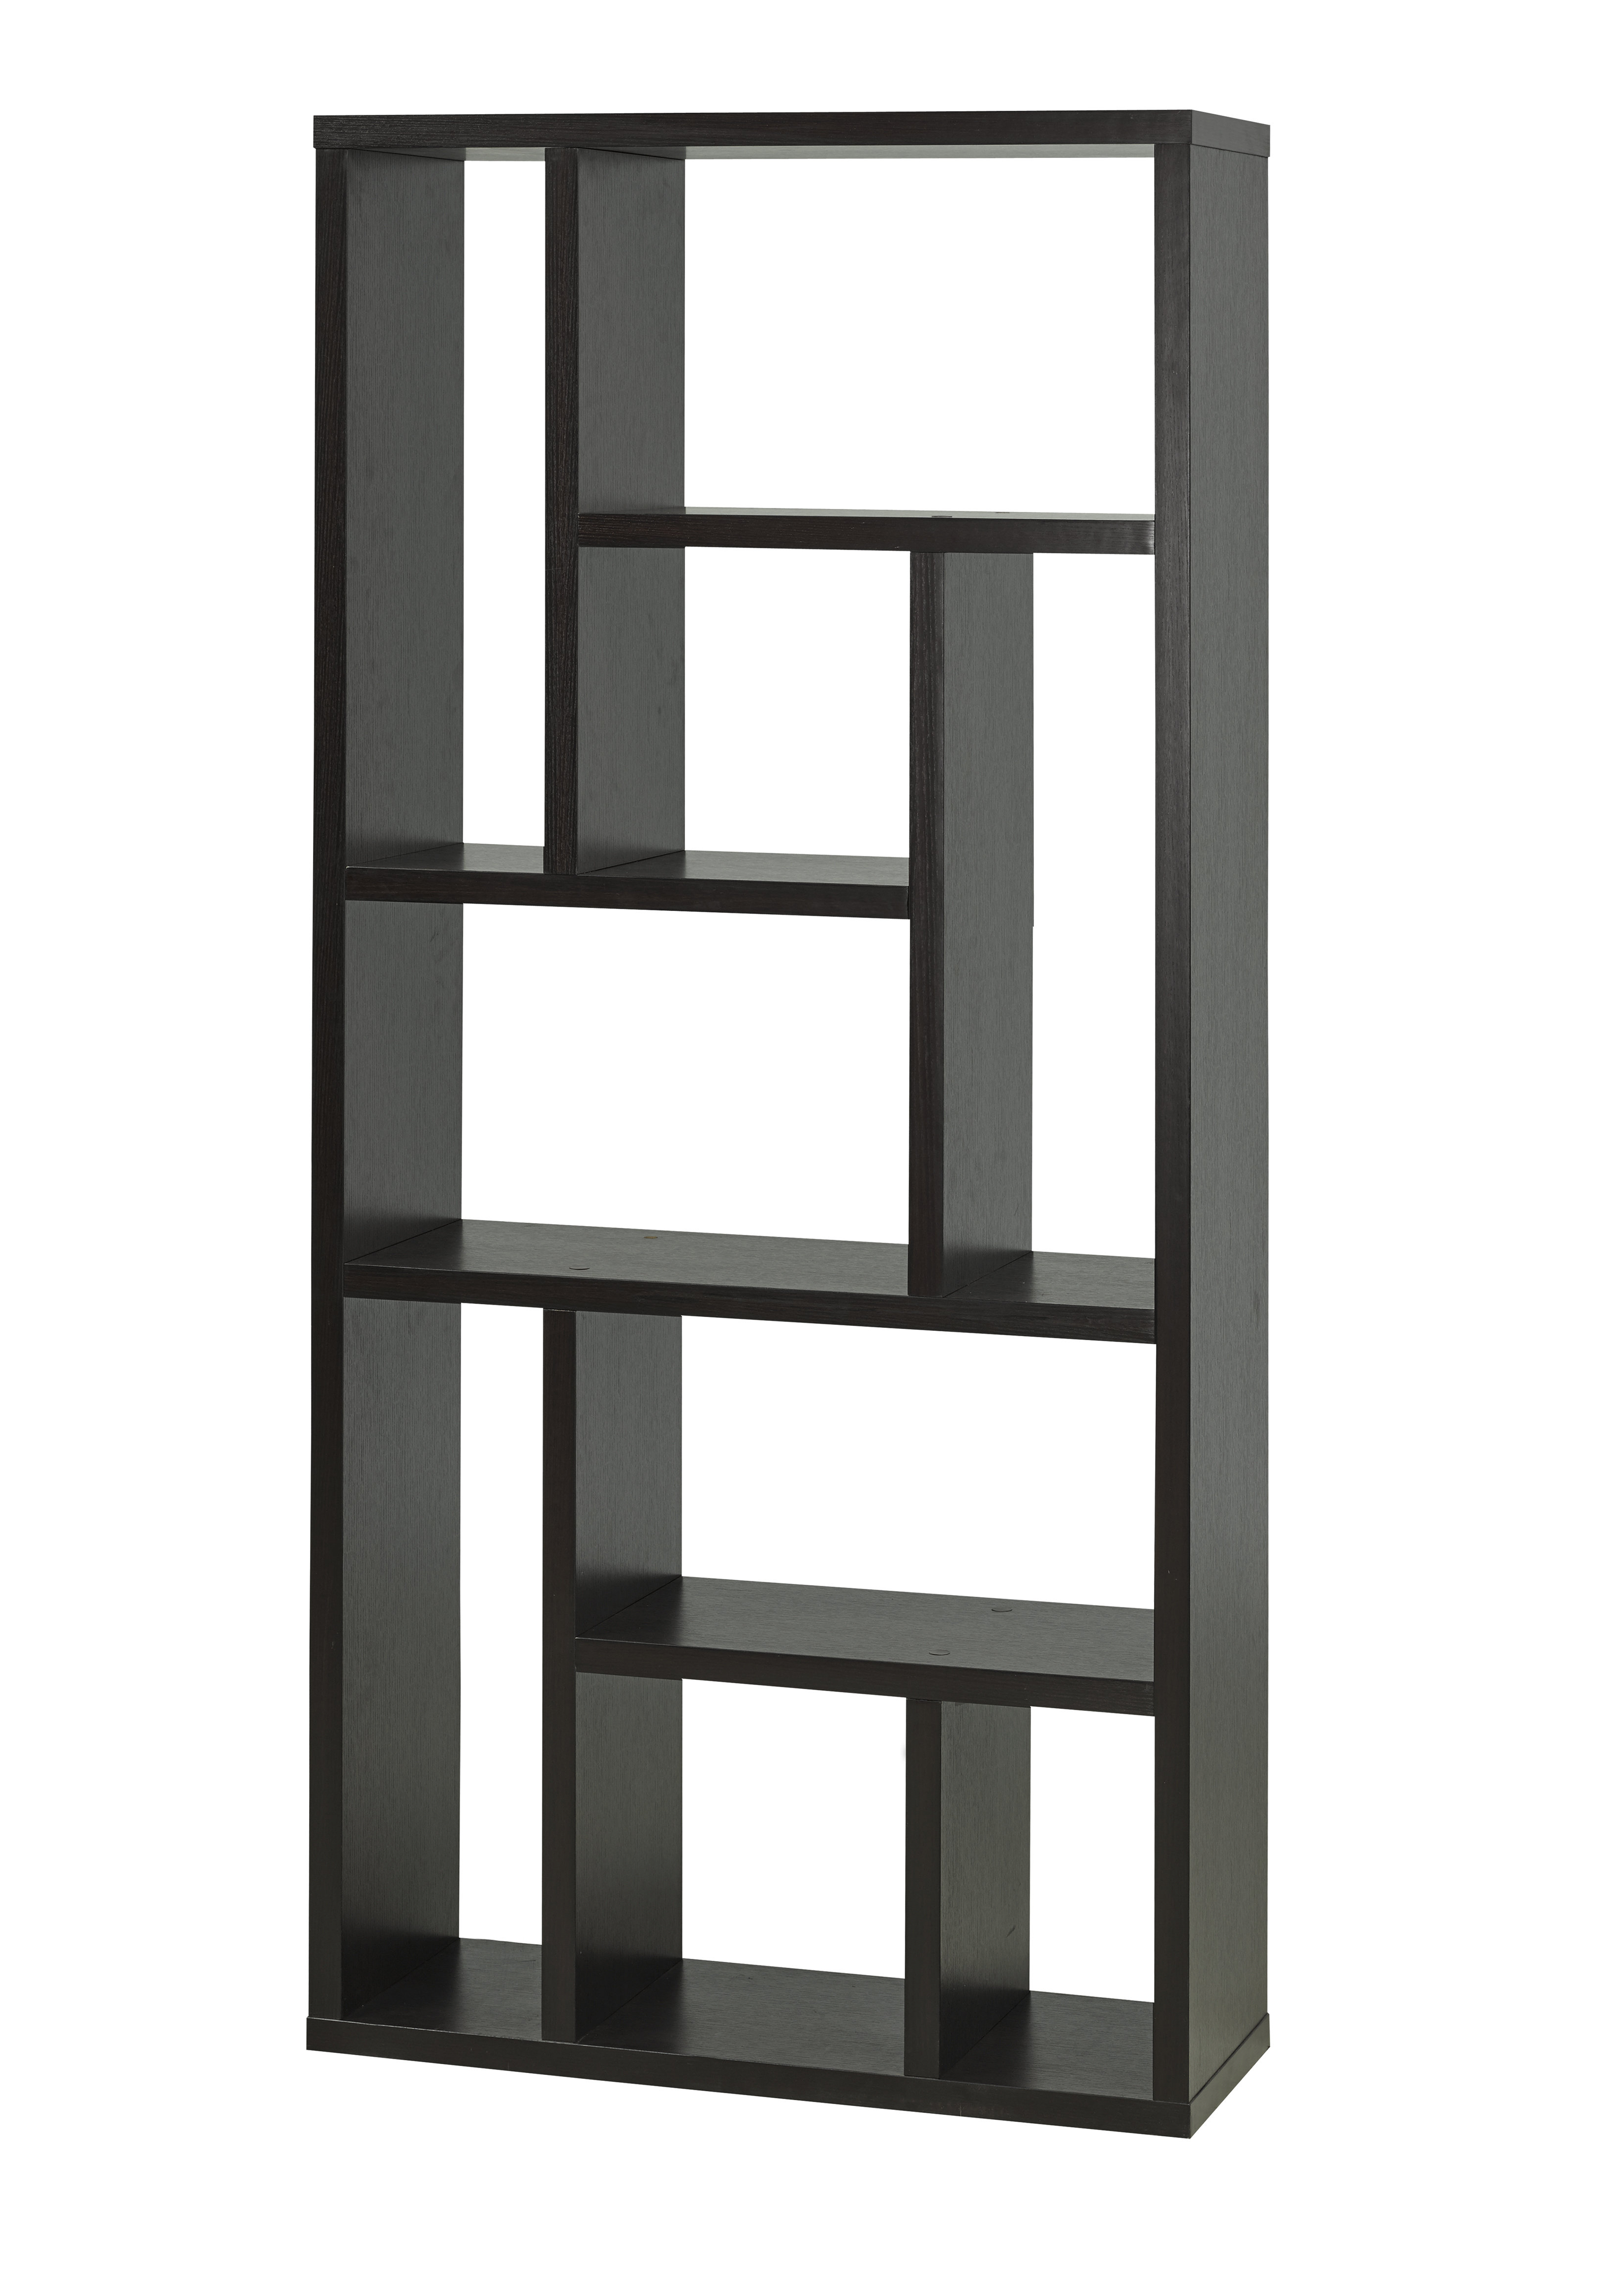 Best And Newest Bauch Multi Tier Geometric Bookcase Throughout Vaccaro Geometric Bookcases (Gallery 10 of 20)